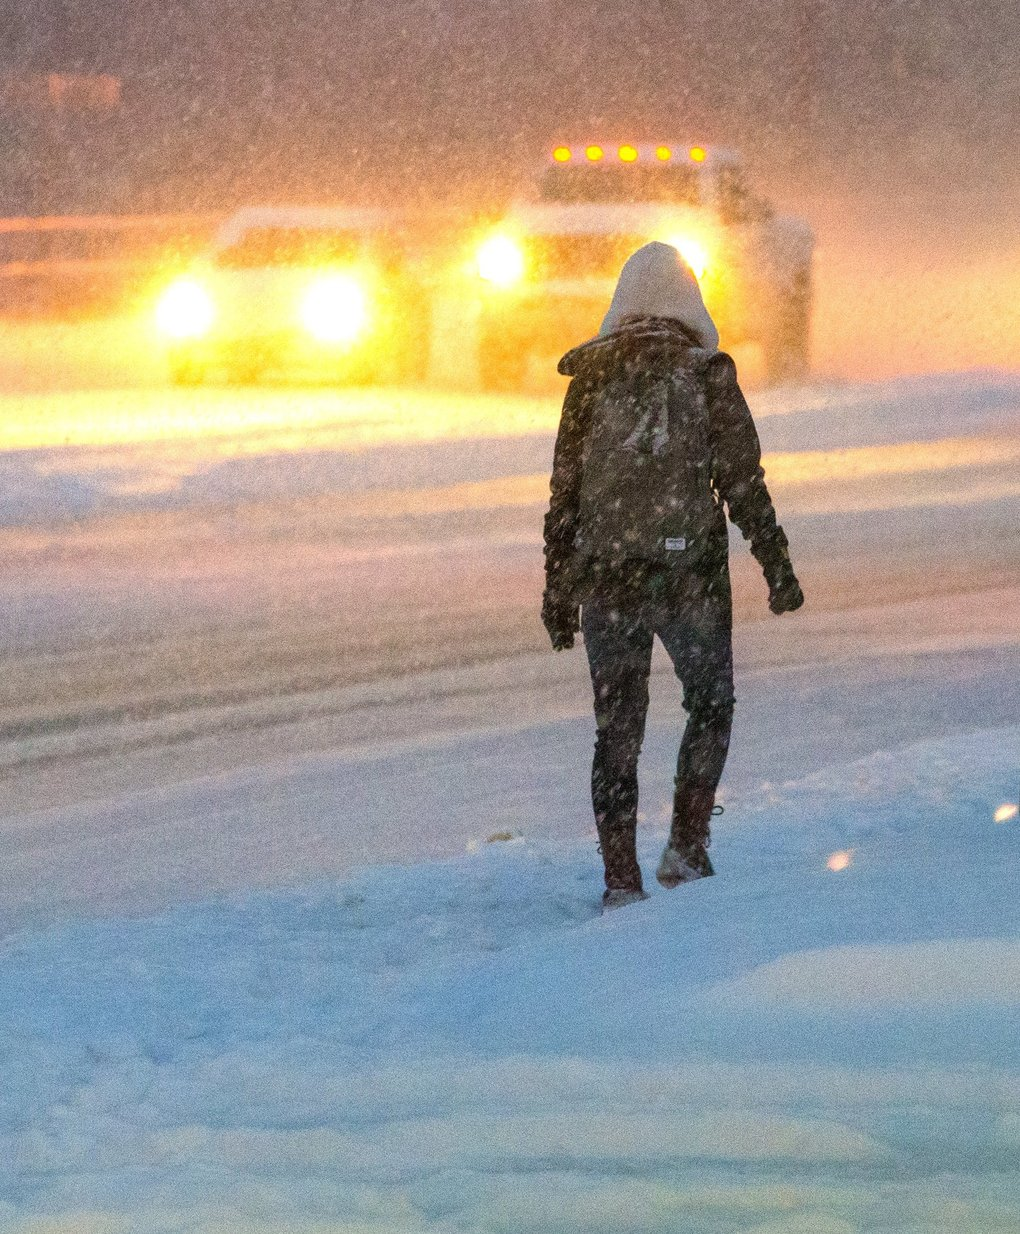 Walking along Northeast Bothell Way in Kenmore was a challenge early Monday, but it may have been more efficient than driving on slick roads. (Mike Siegel / The Seattle Times)